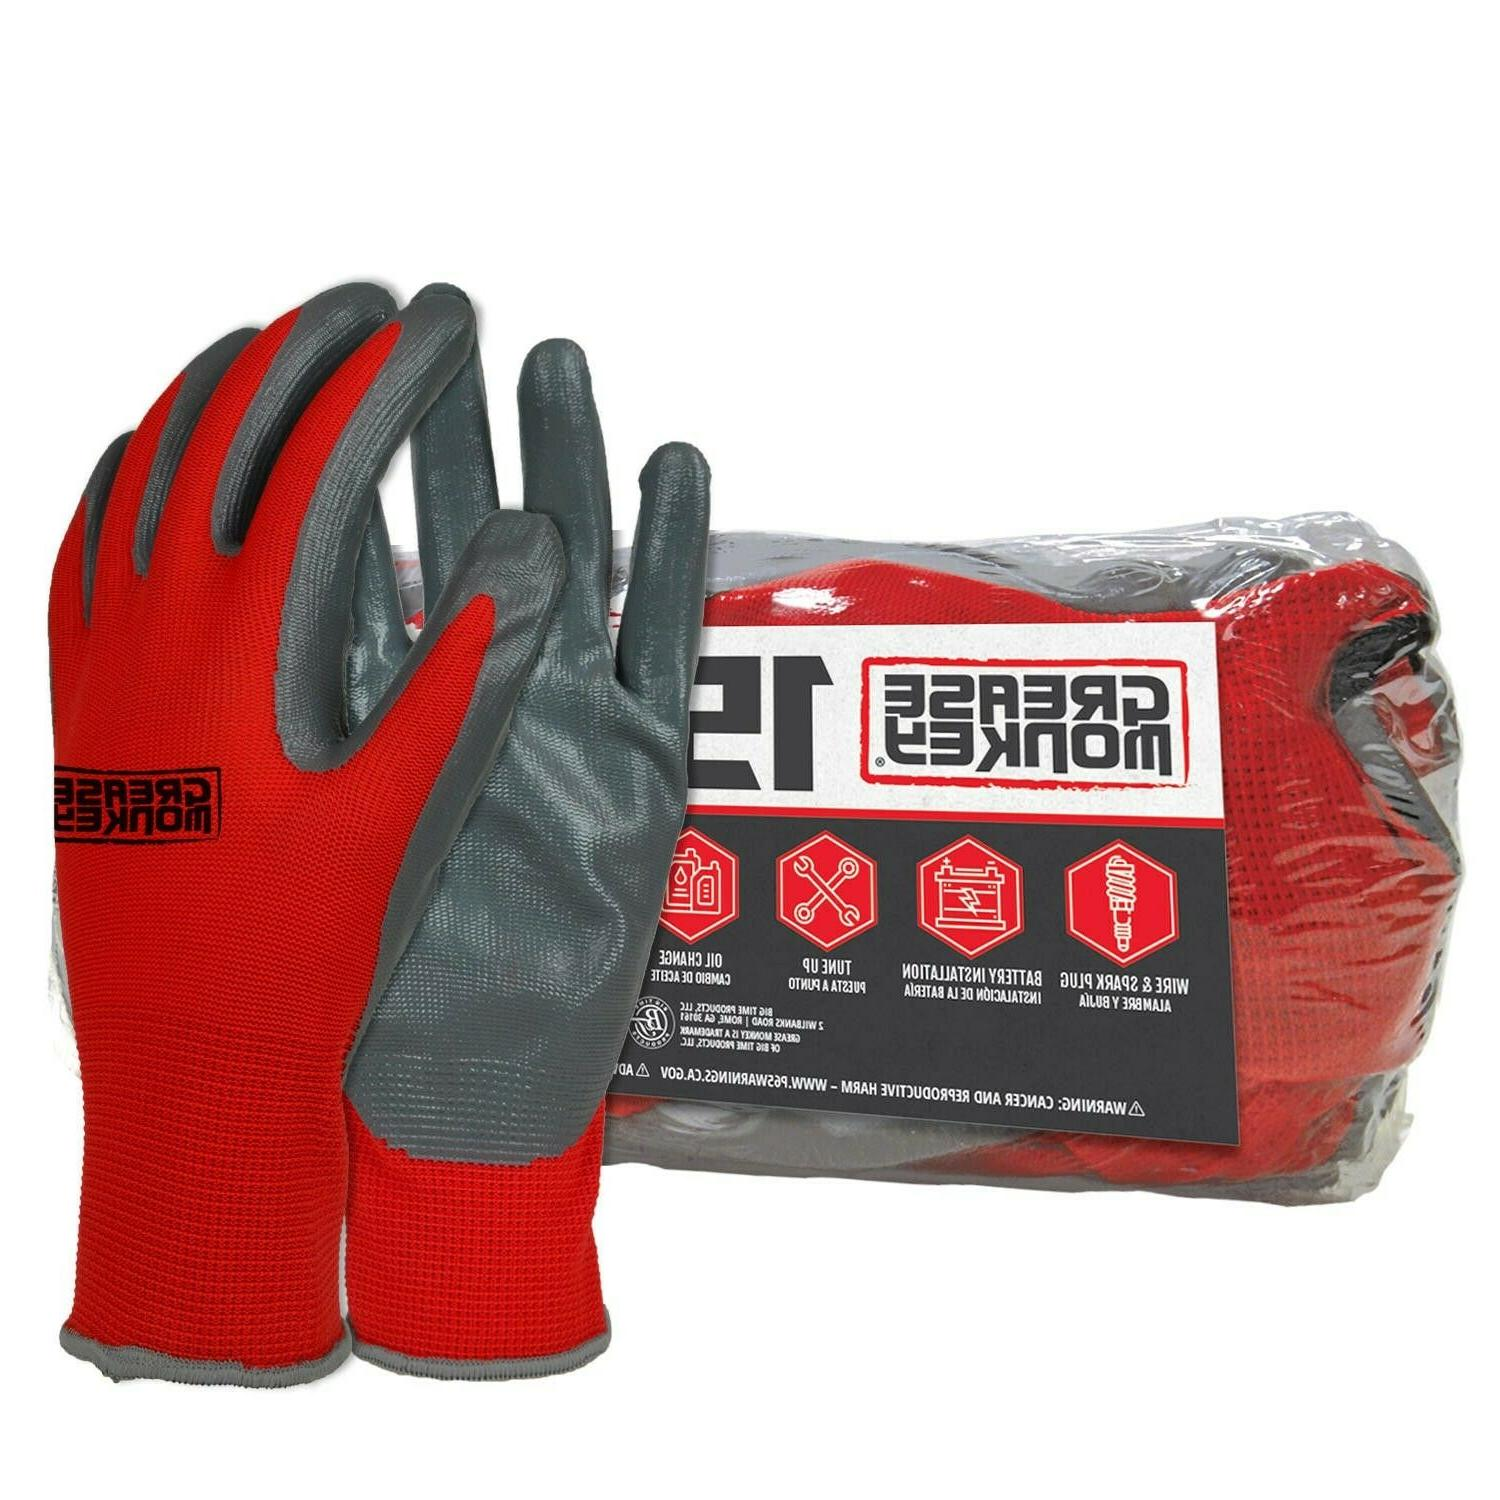 general purpose nitrile coated work gloves size